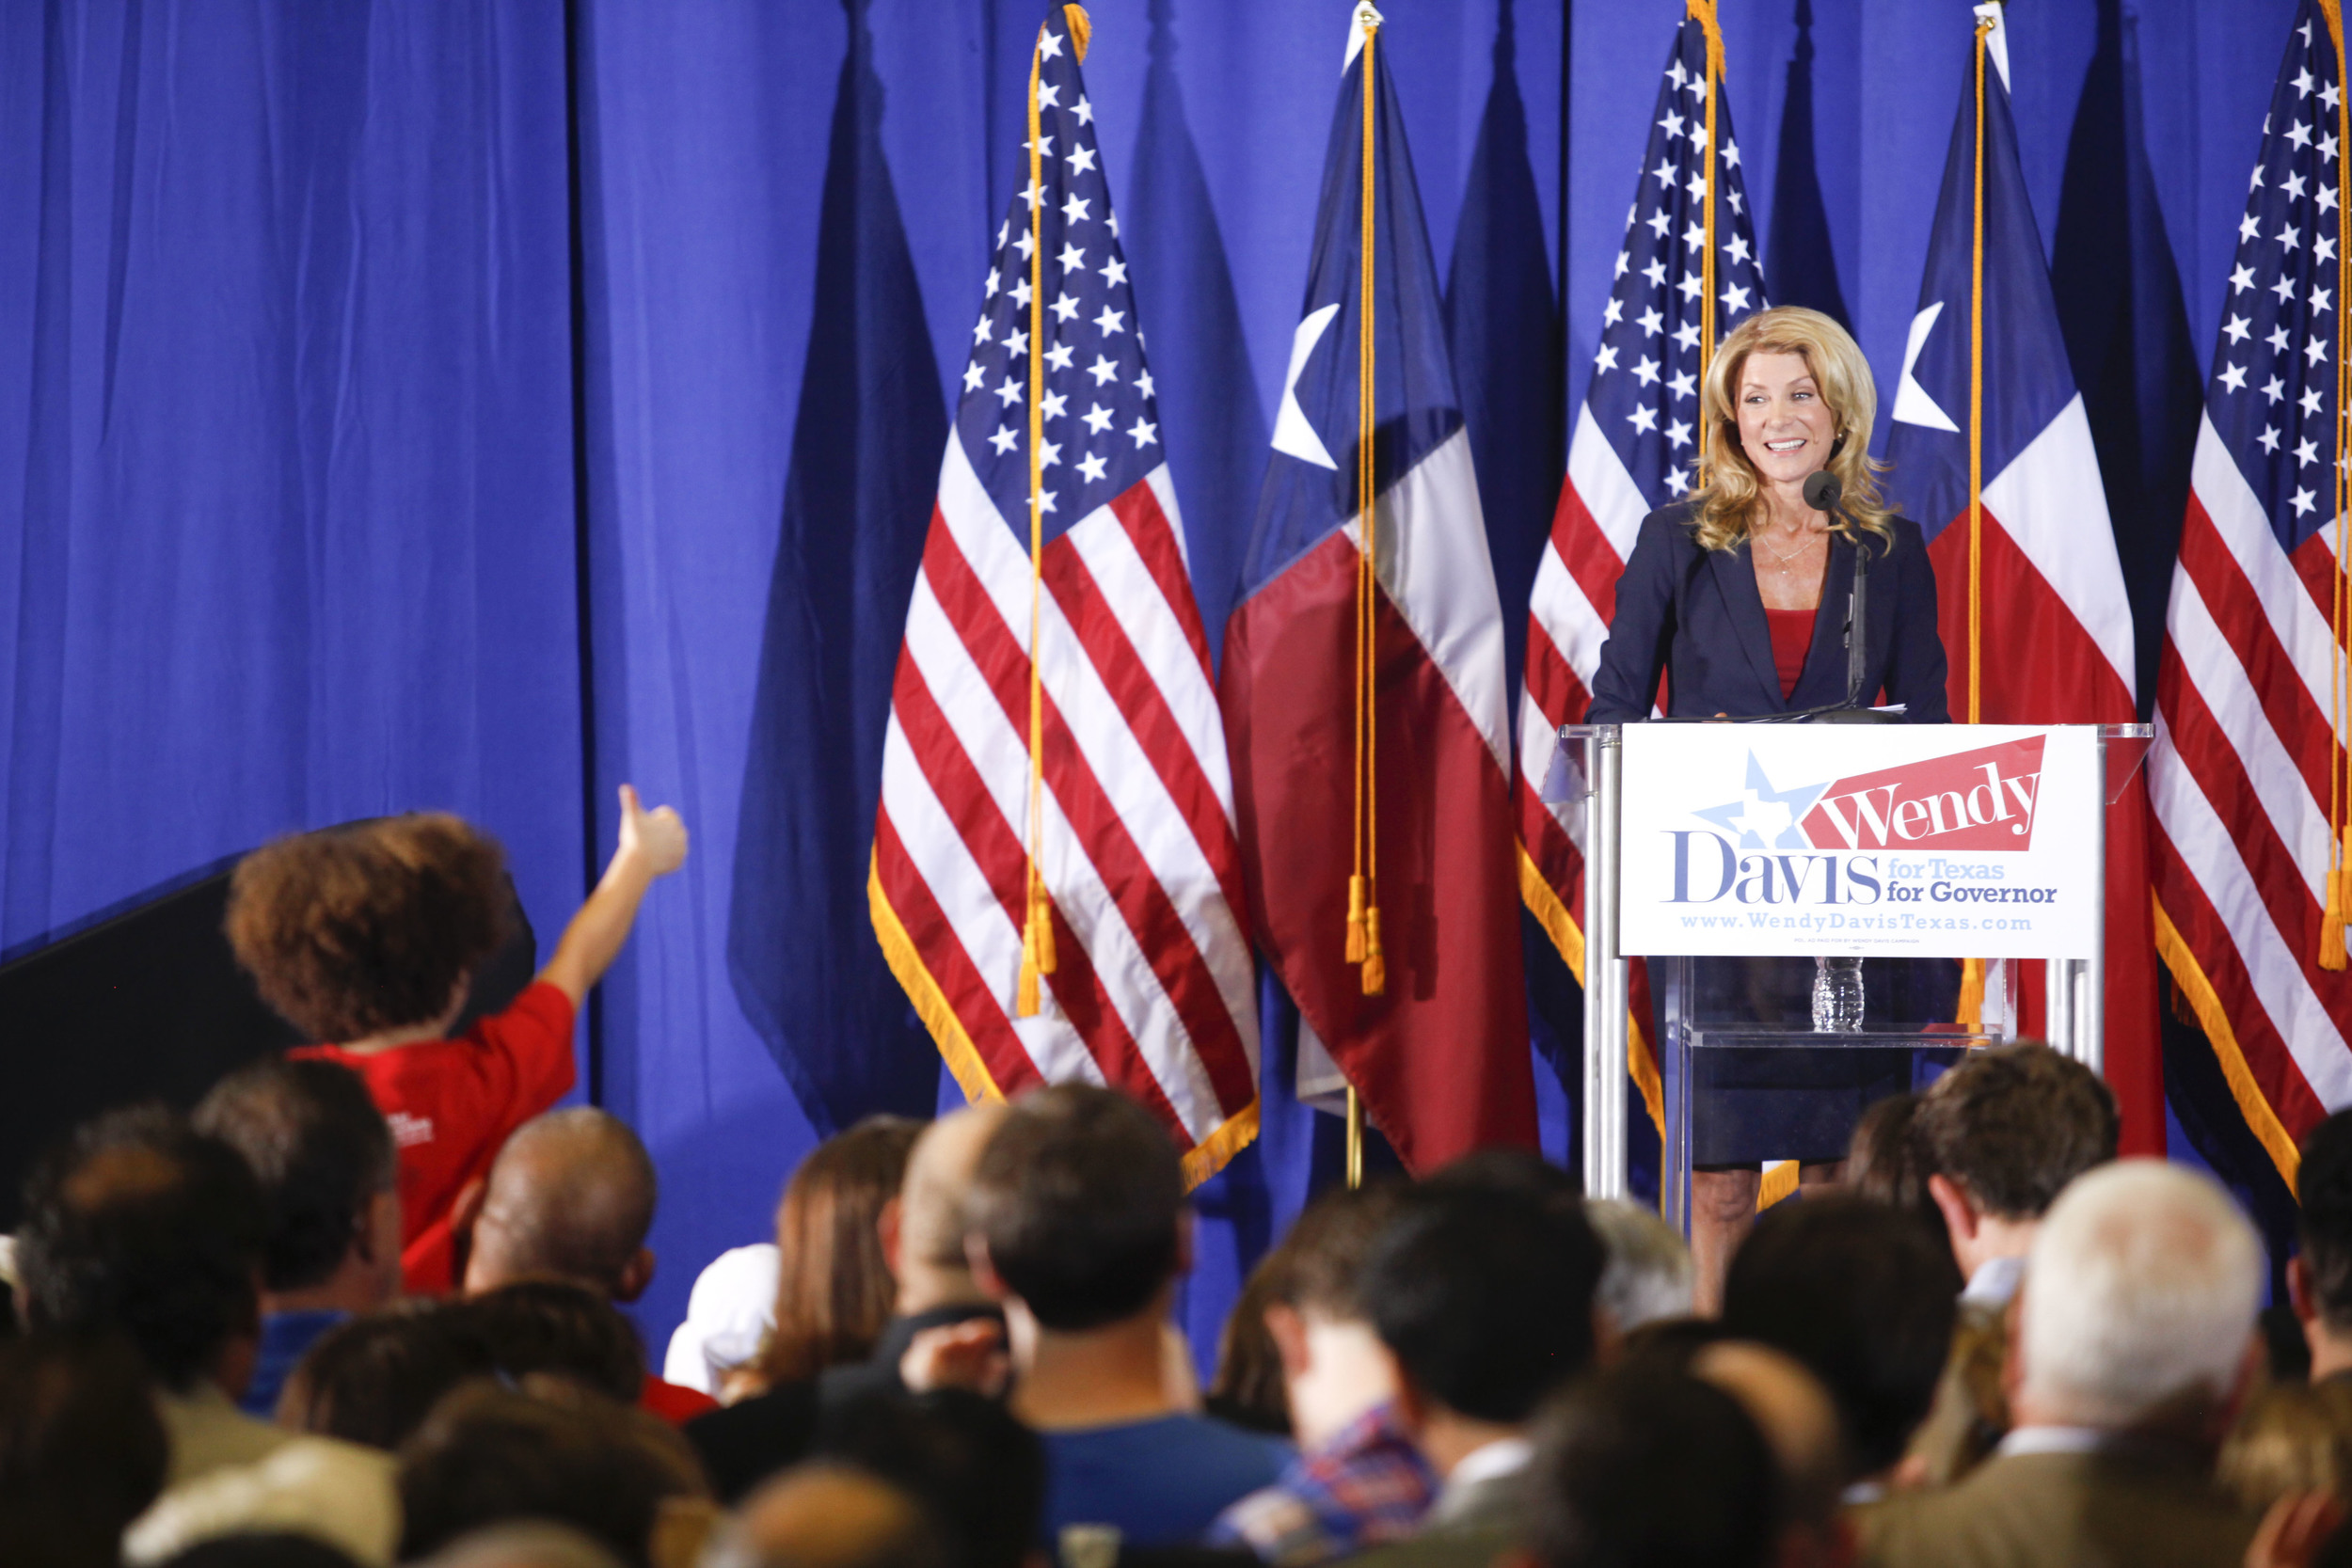 A young fan gives Sen. Wendy Davis the thumbs up.